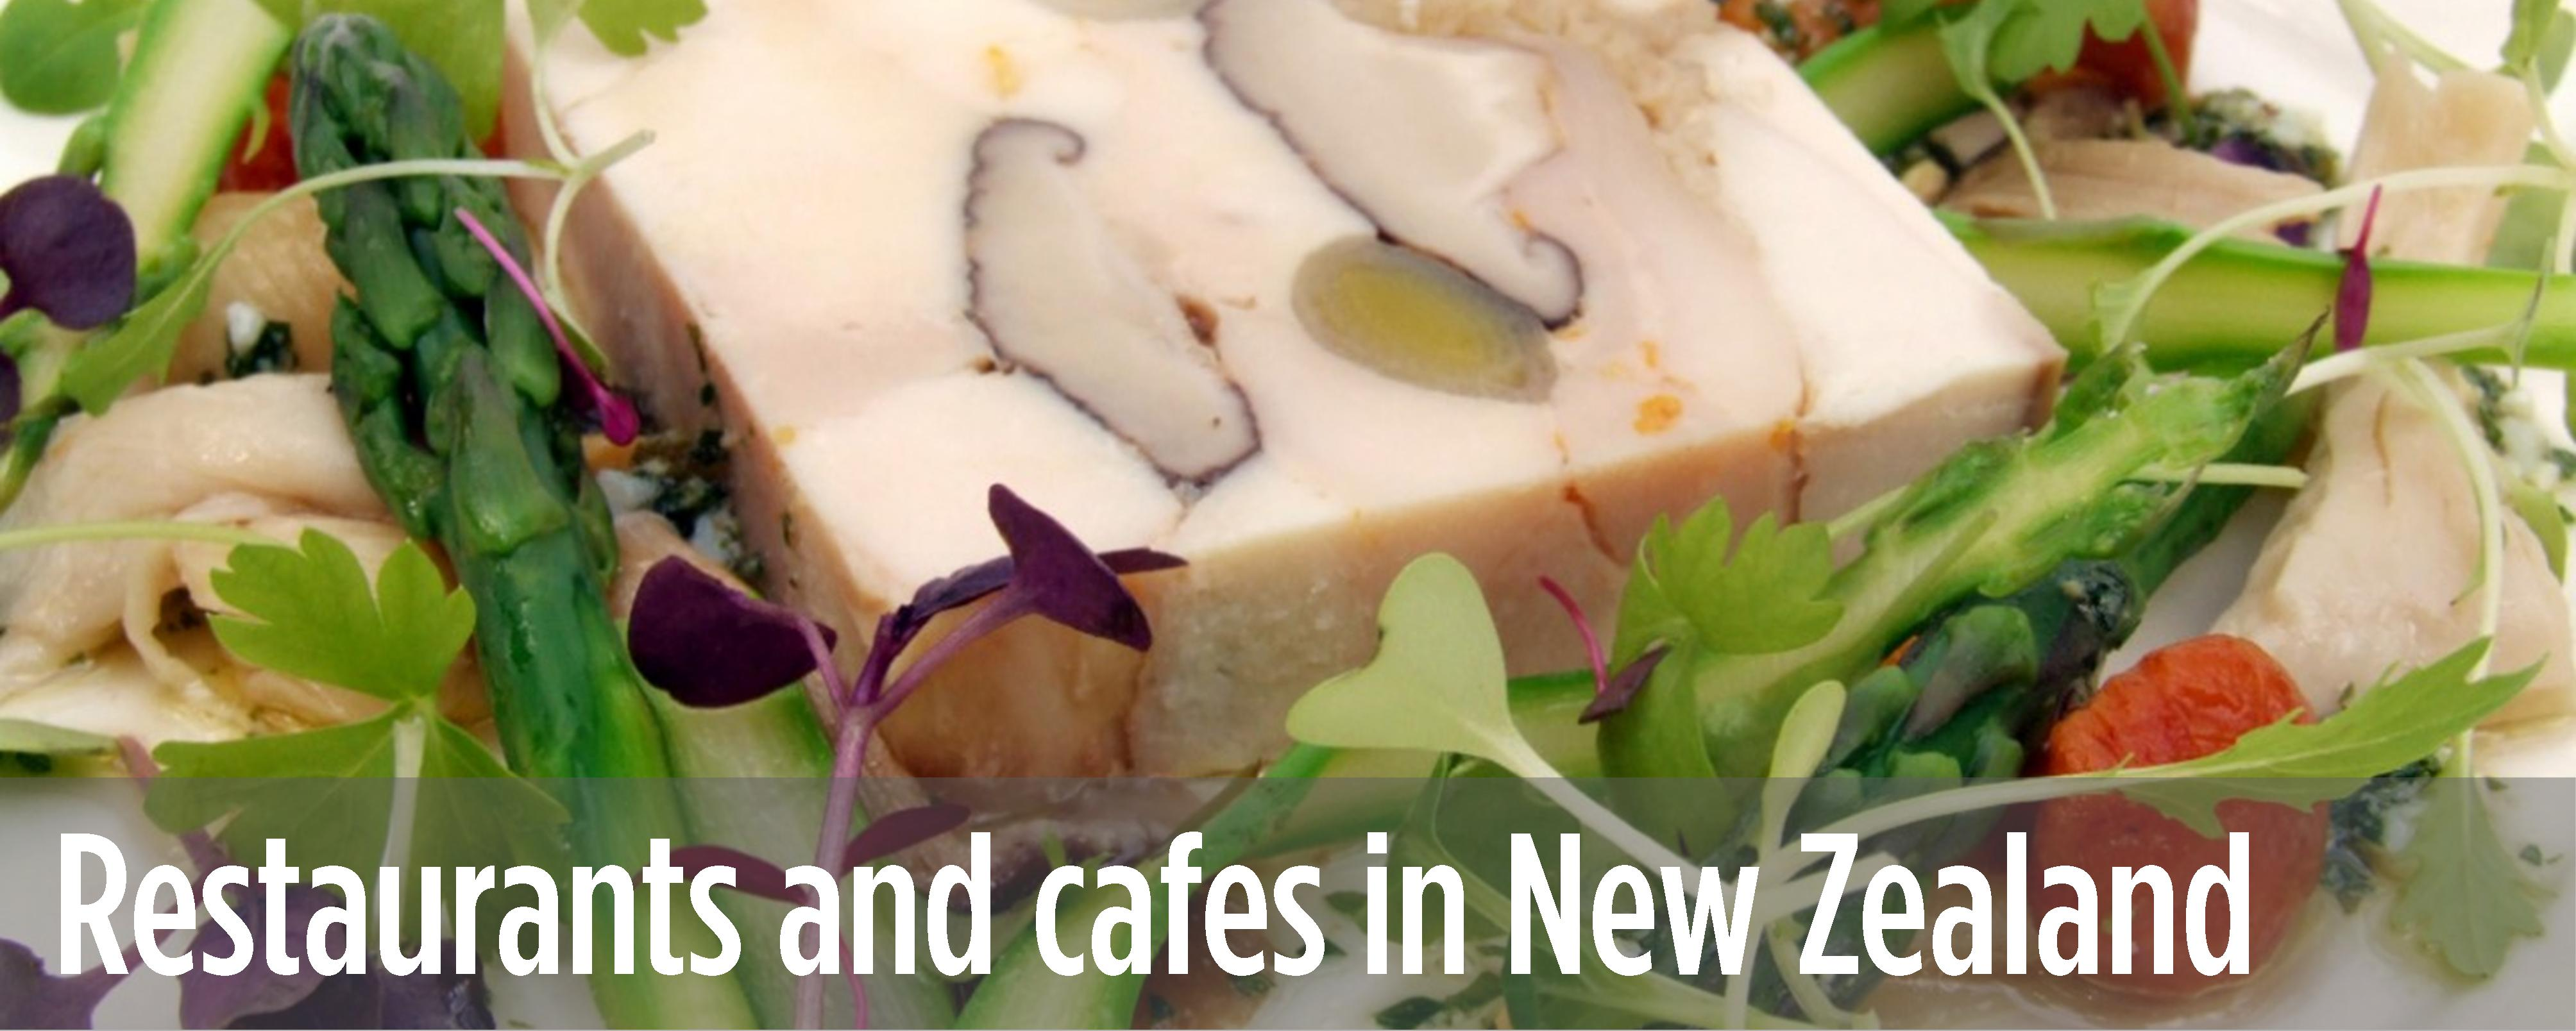 Restaurants and cafes in New Zealand